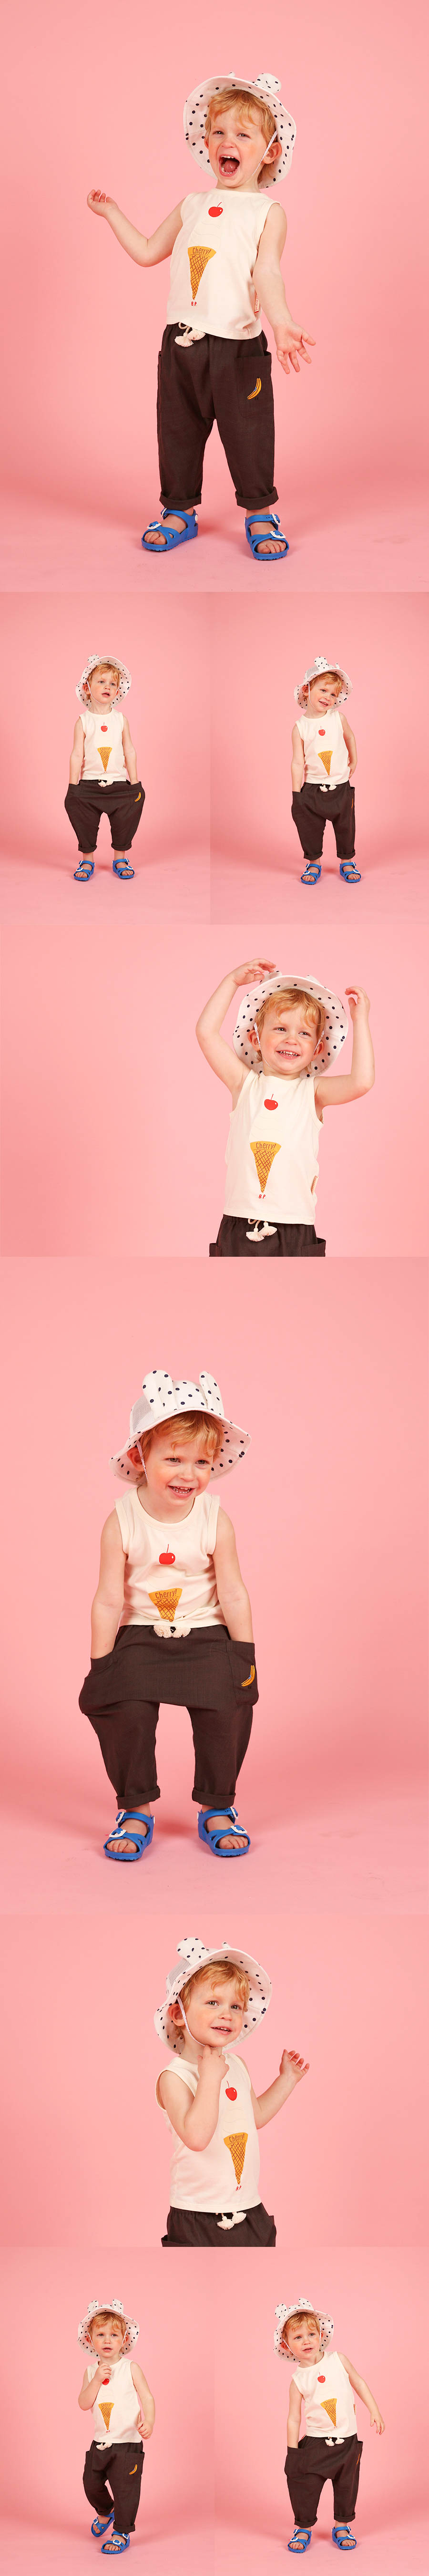 Cherry ice cream cone baby tank top 상세 이미지